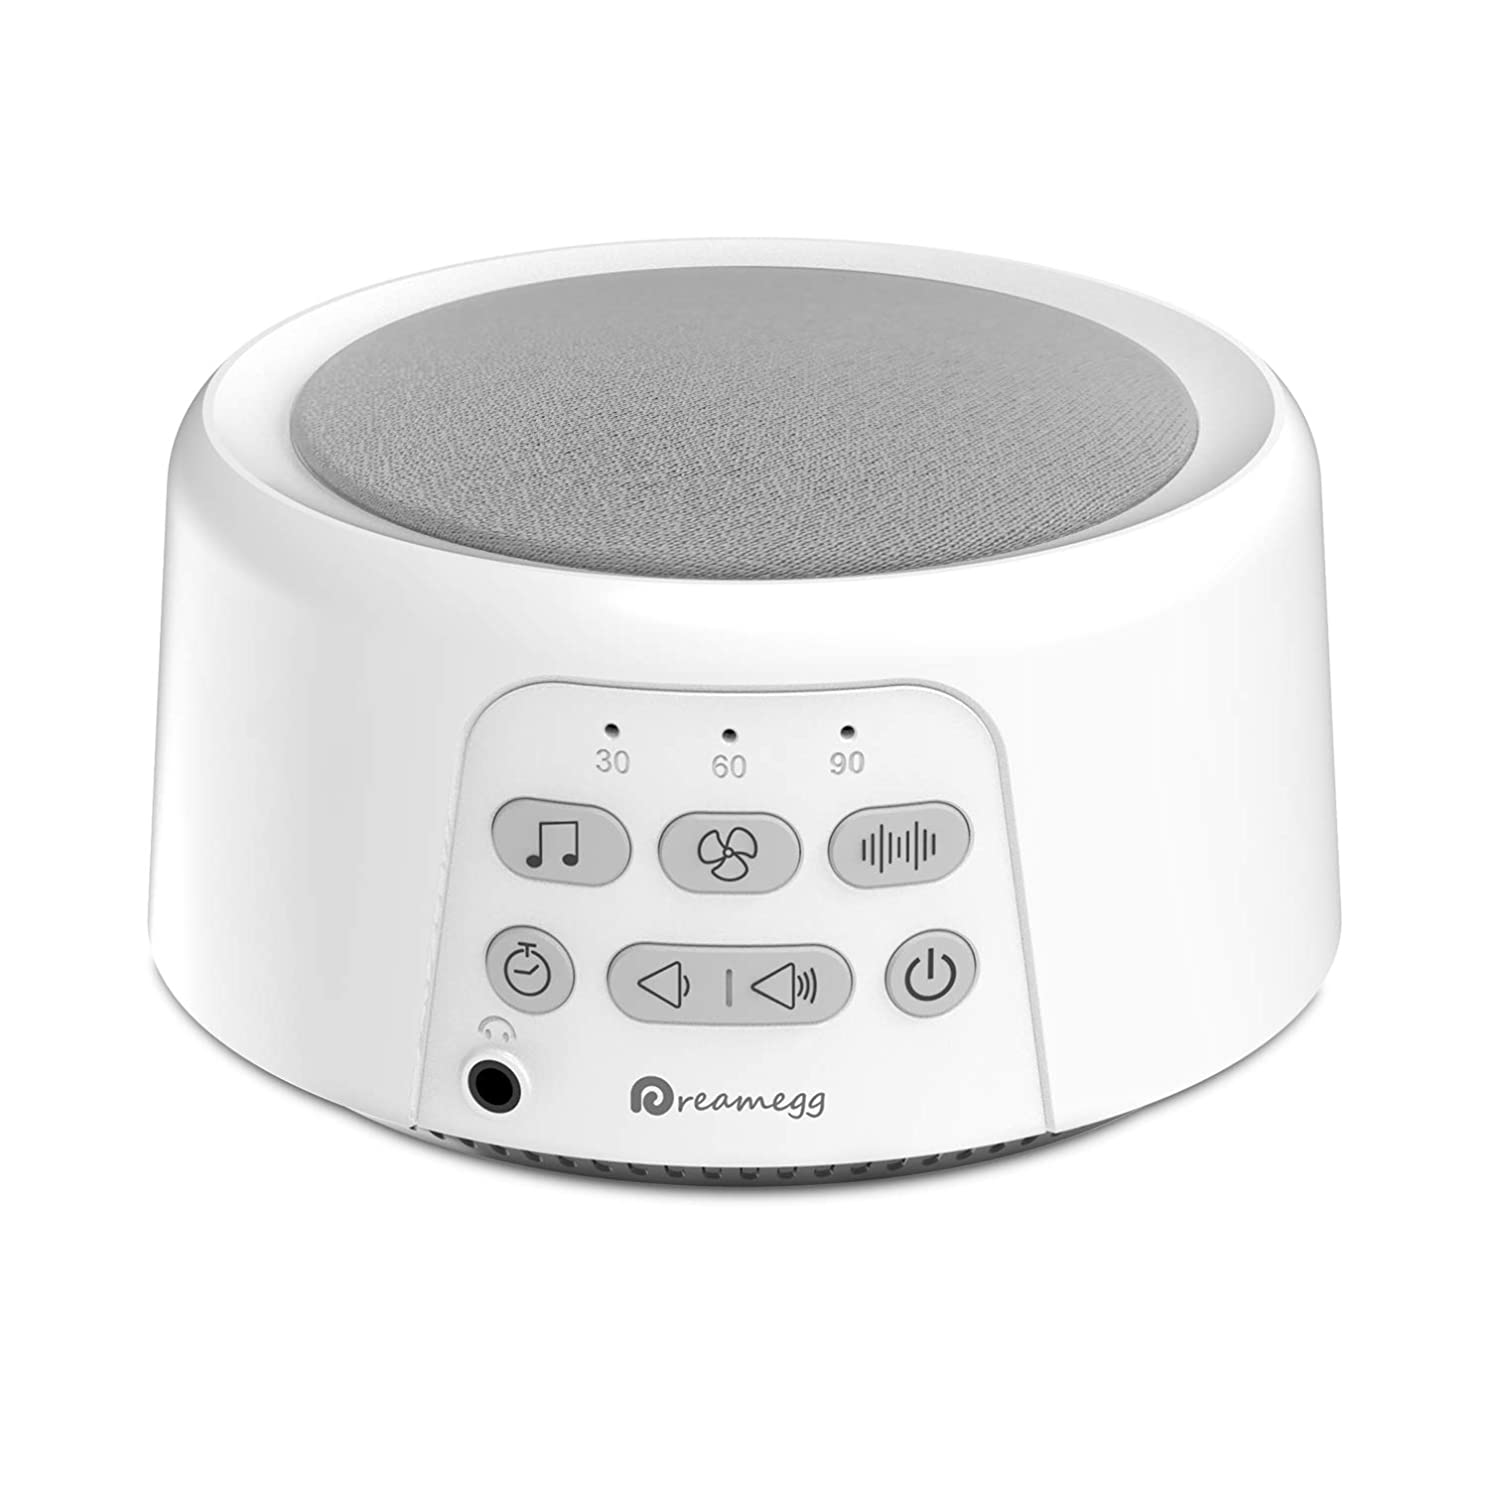 Dreamegg D3 Portable Sound Machine - White Noise Machine for Sleeping, 24 Soothing HiFi Sound, Continuous or Timer, Sleep Therapy Sound Machine for Baby Adult Traveler, Rechargeable Battery or Plug In